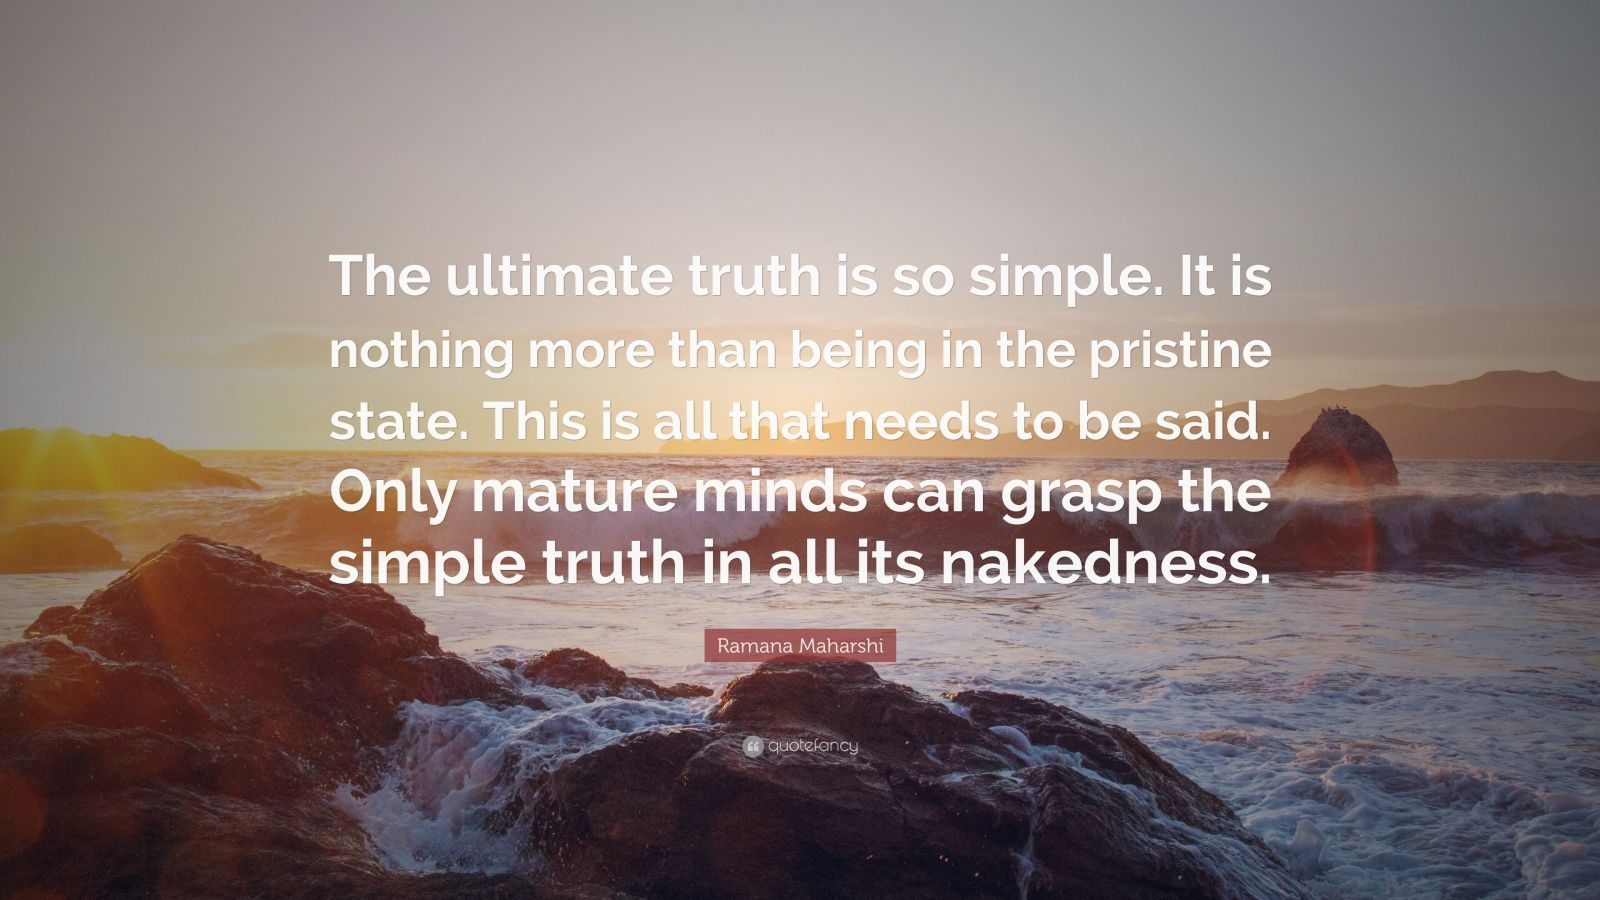 """Ramana Maharshi Quote: """"The ultimate truth is so simple. It is nothing more than being in the pristine state. This is all that needs to be said. Only mature minds can grasp the simple truth in all its nakedness."""""""